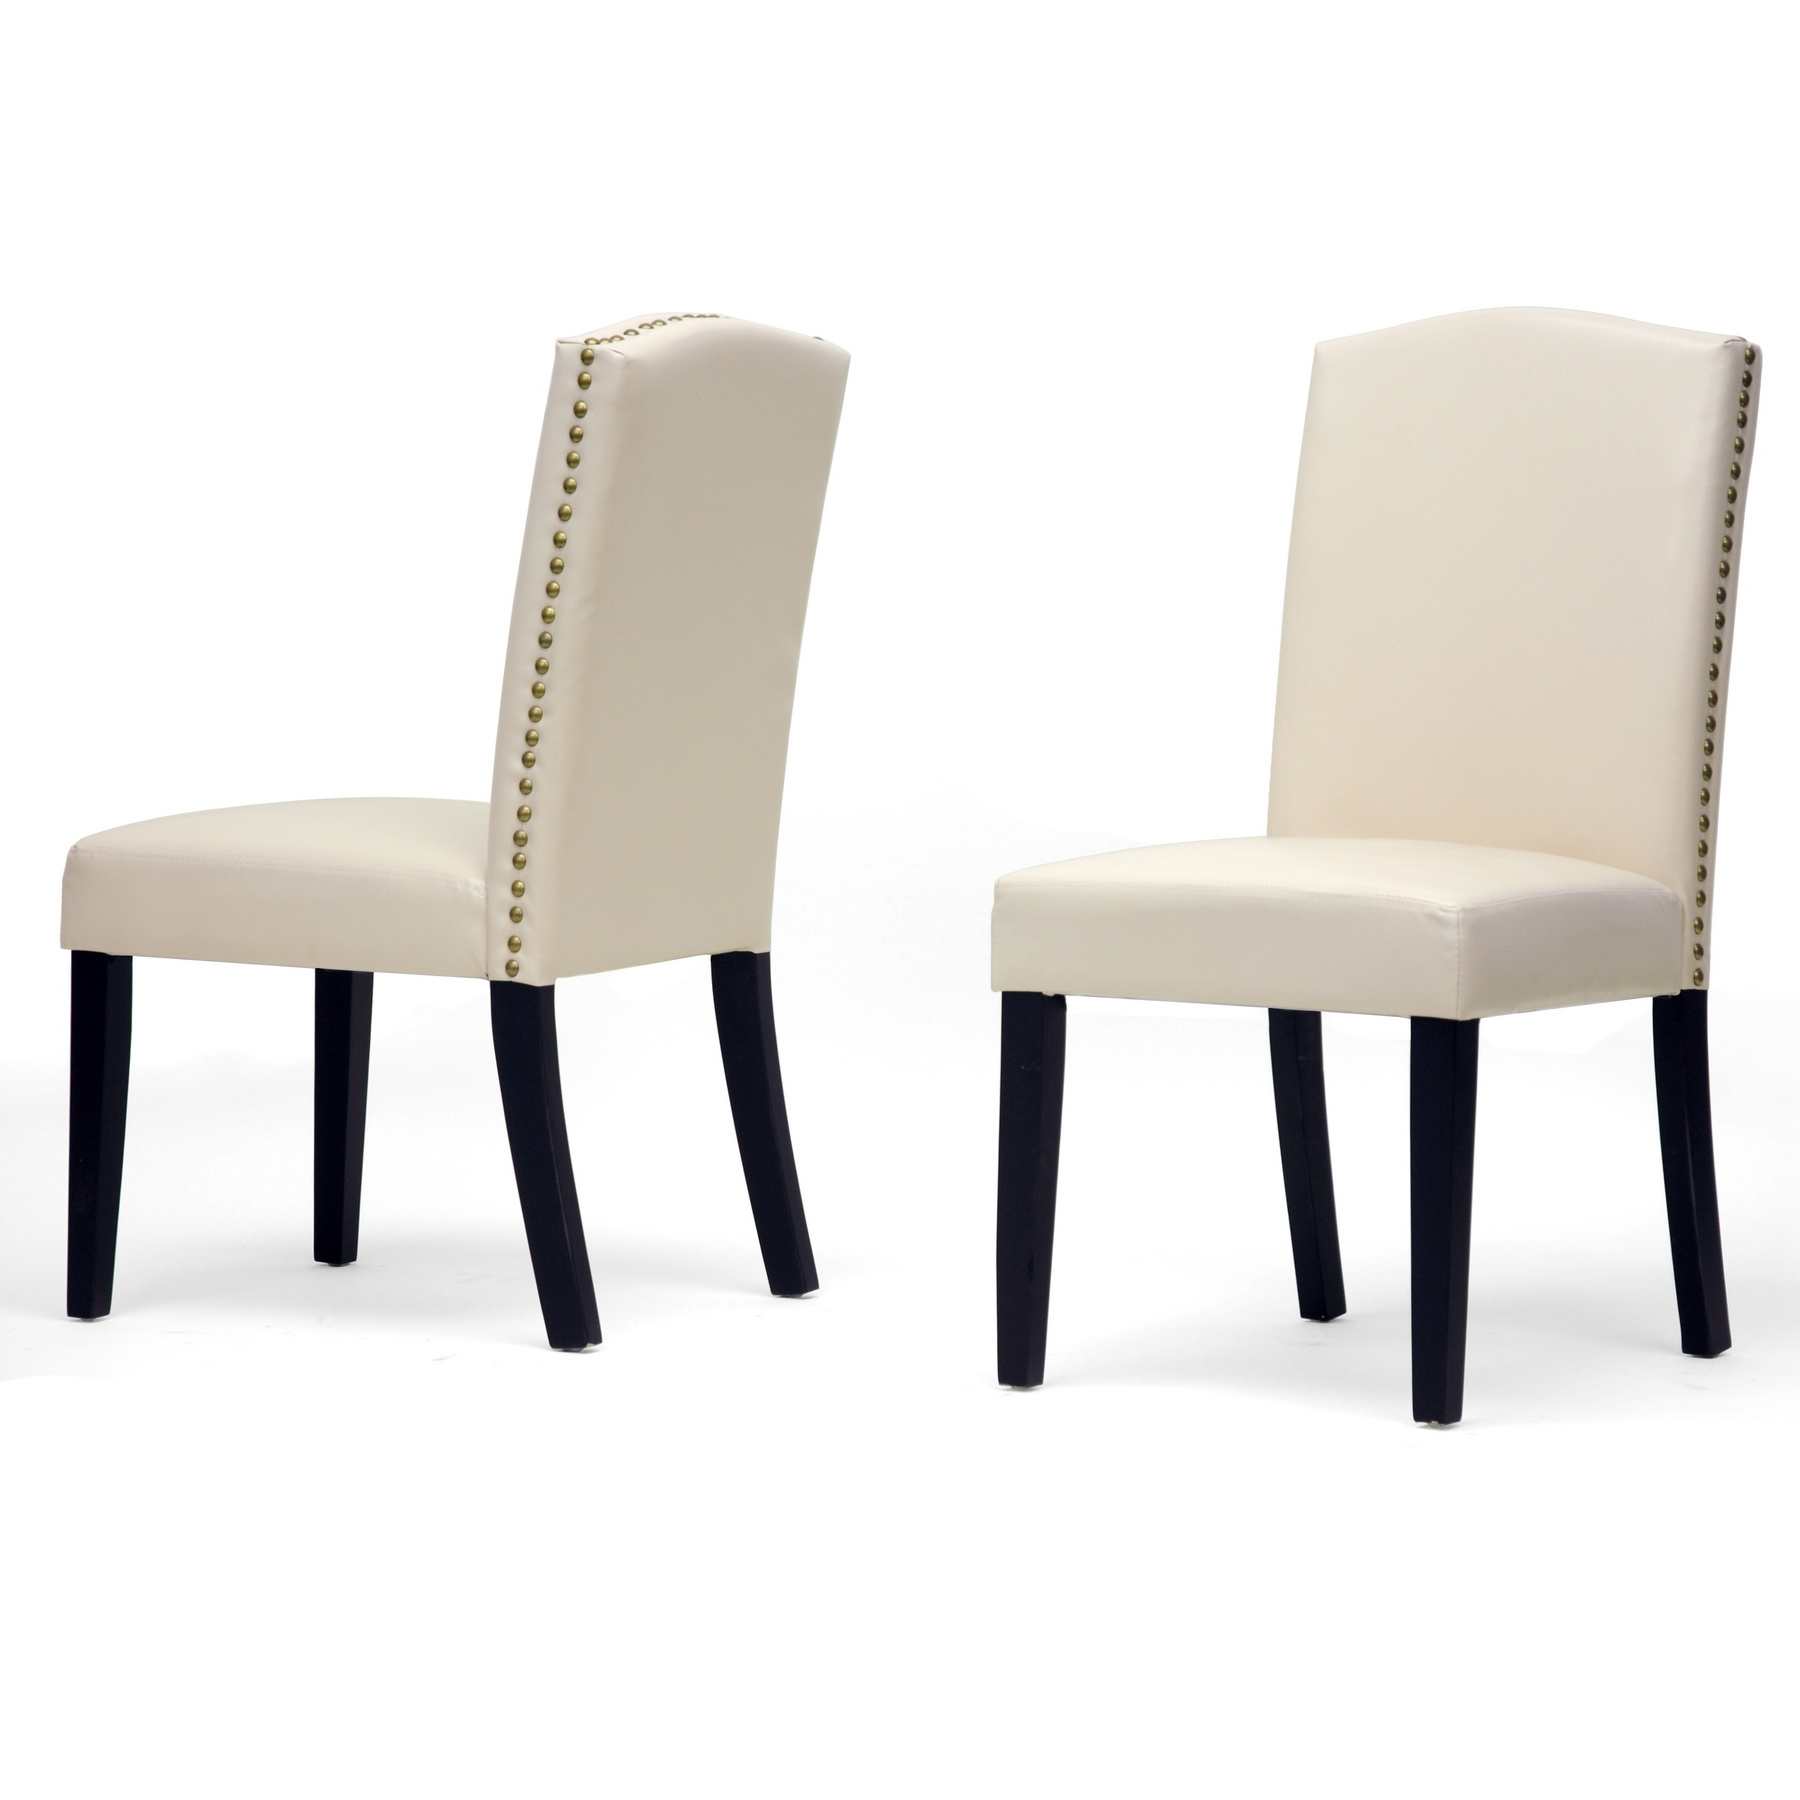 2018 White Leather Chairs With High Back Plus Black Wooden Legs French With High Back Leather Dining Chairs (View 21 of 25)